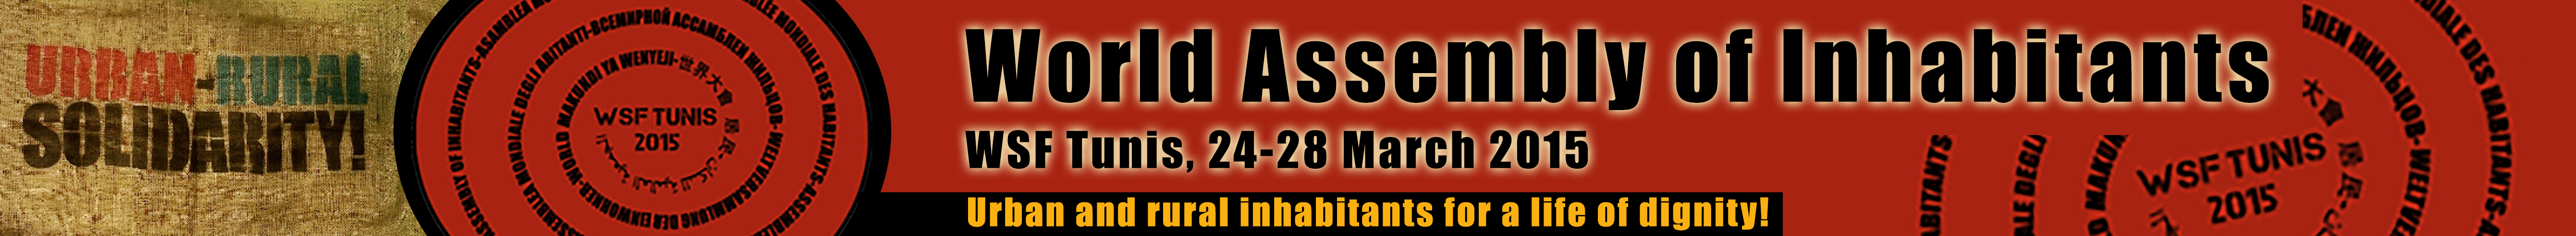 Joint Call to the World Assembly of Inhabitants (WSF Tunis, 24 to 28 March 2015)